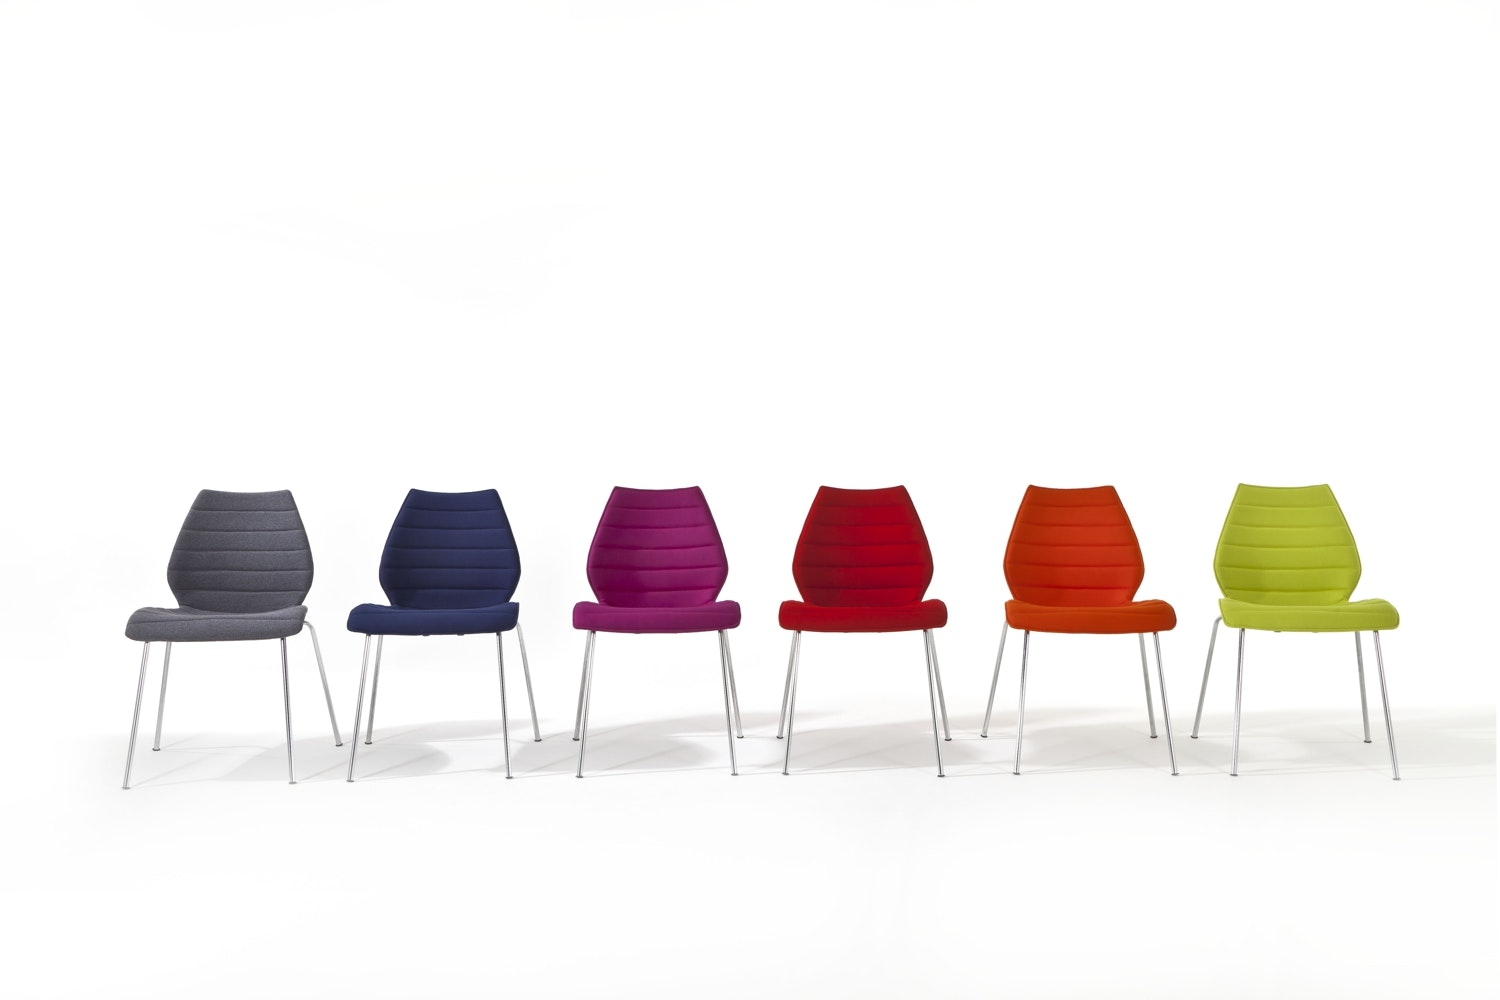 Maui Soft Chair by tribute to Vico Magistretti for Kartell